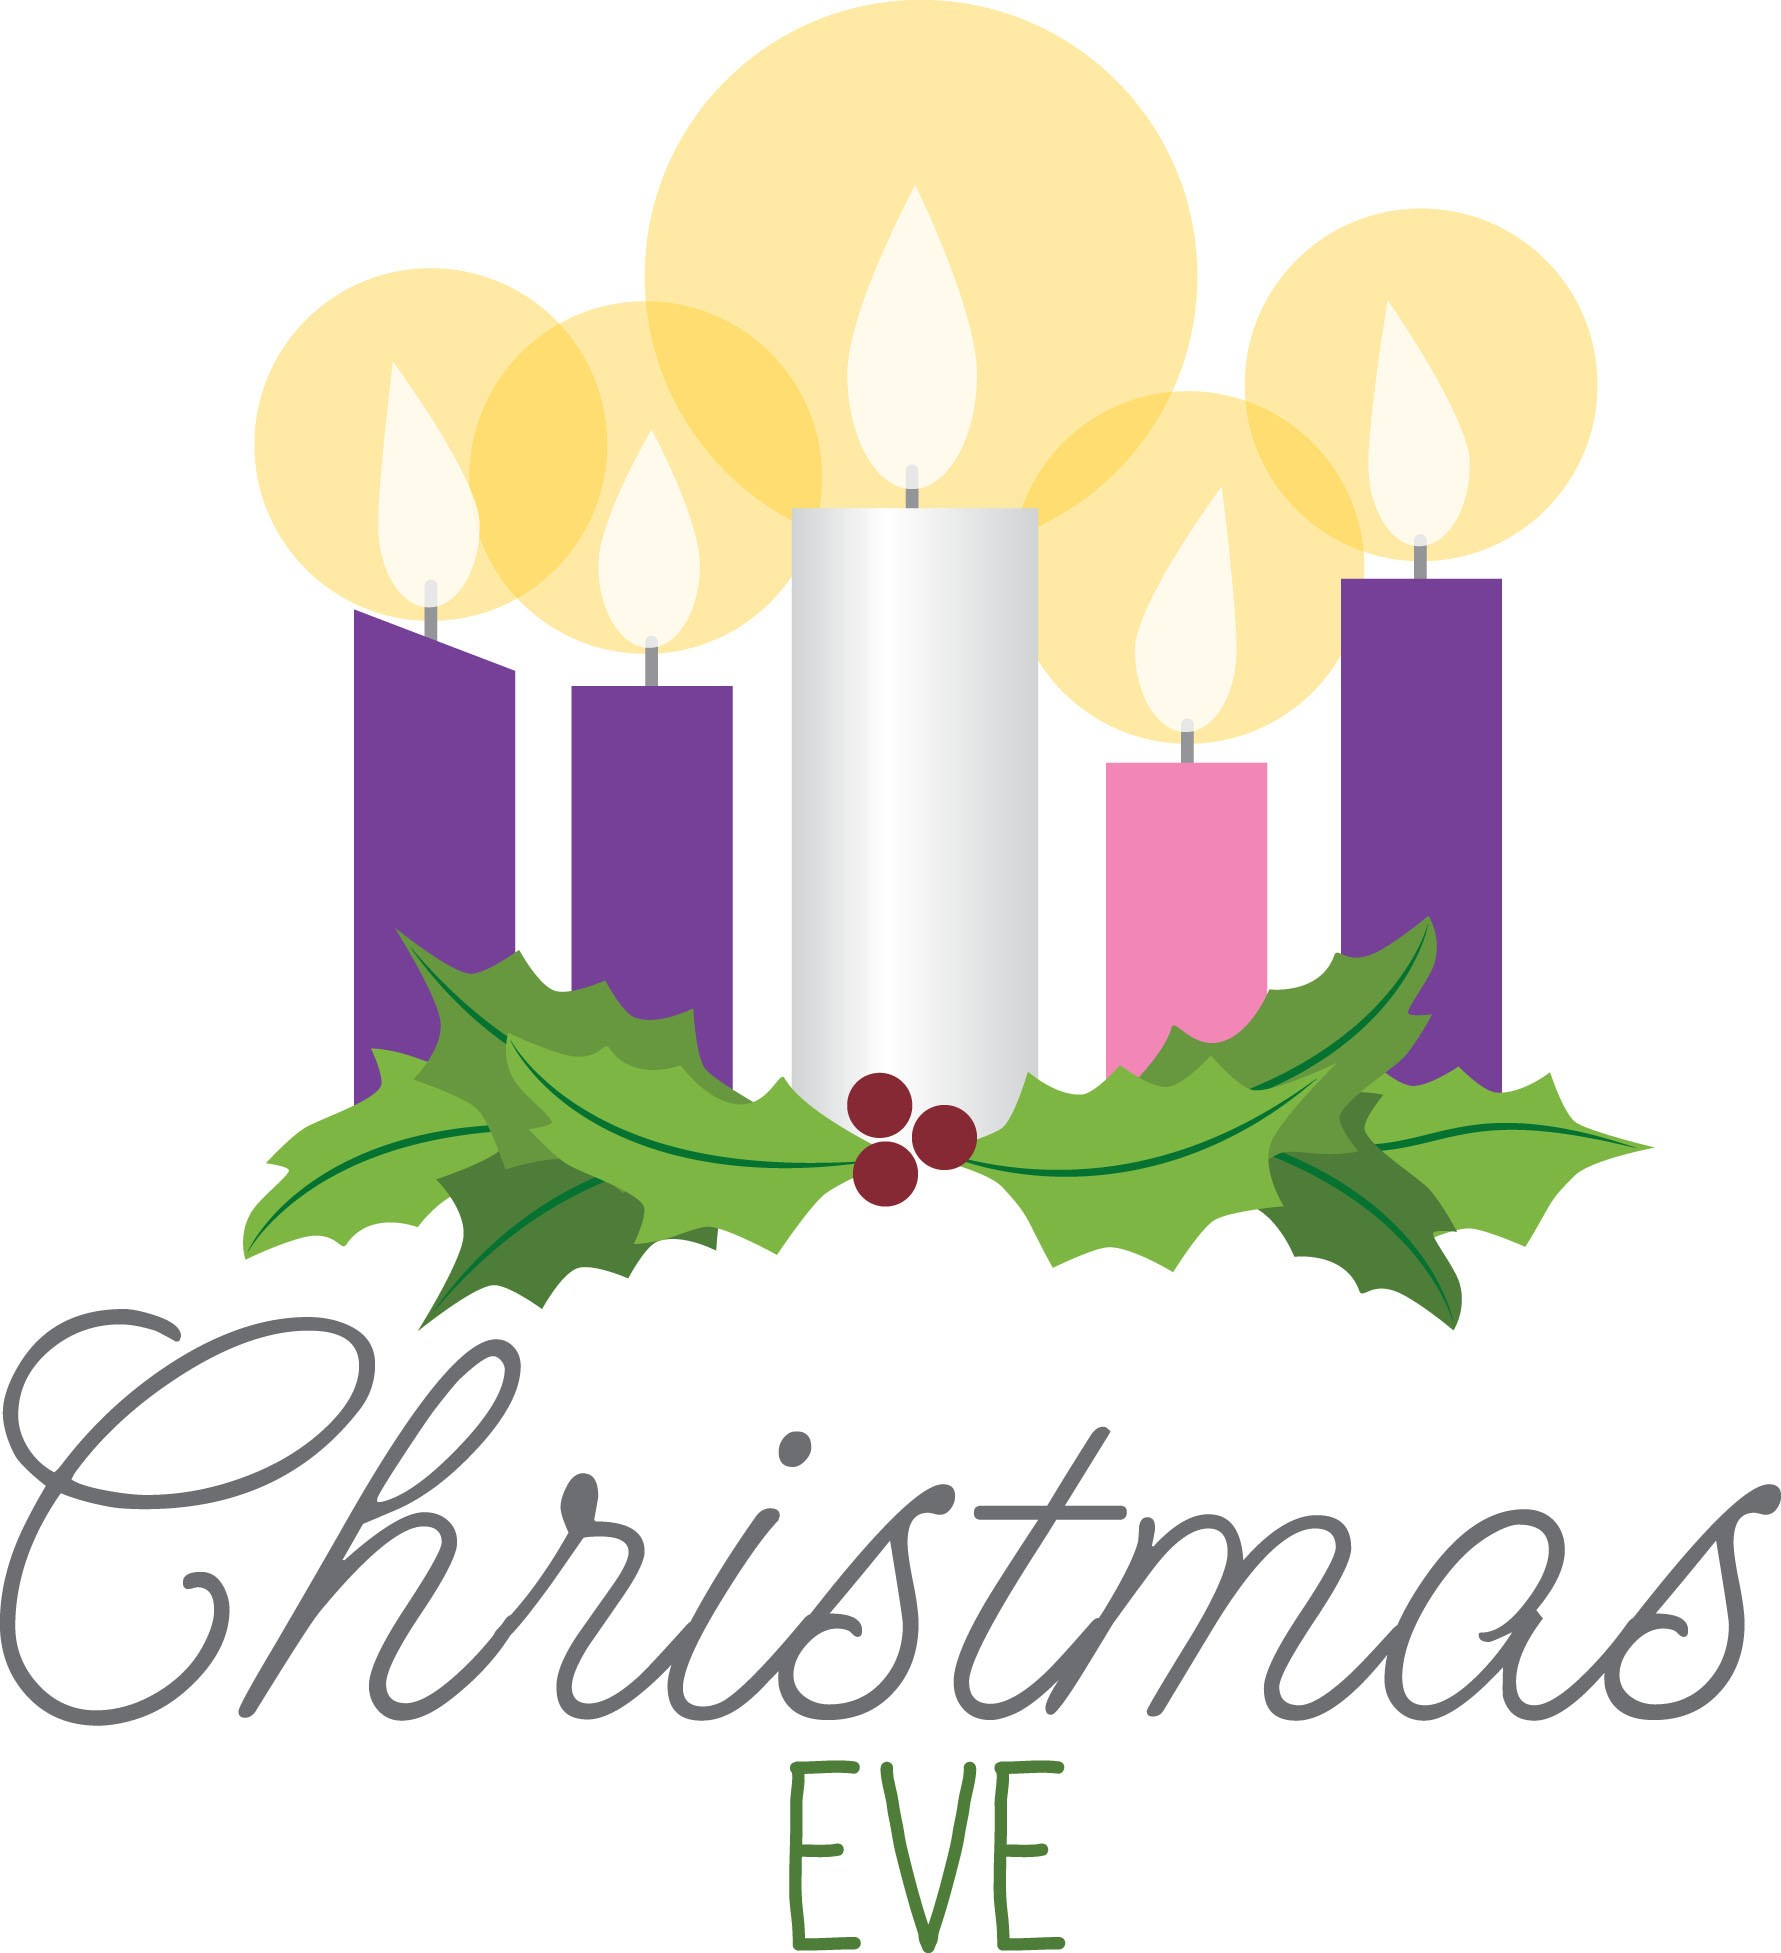 Christmas Eve Clipart.Christmas Eve Service Clipart Free Download Best Christmas